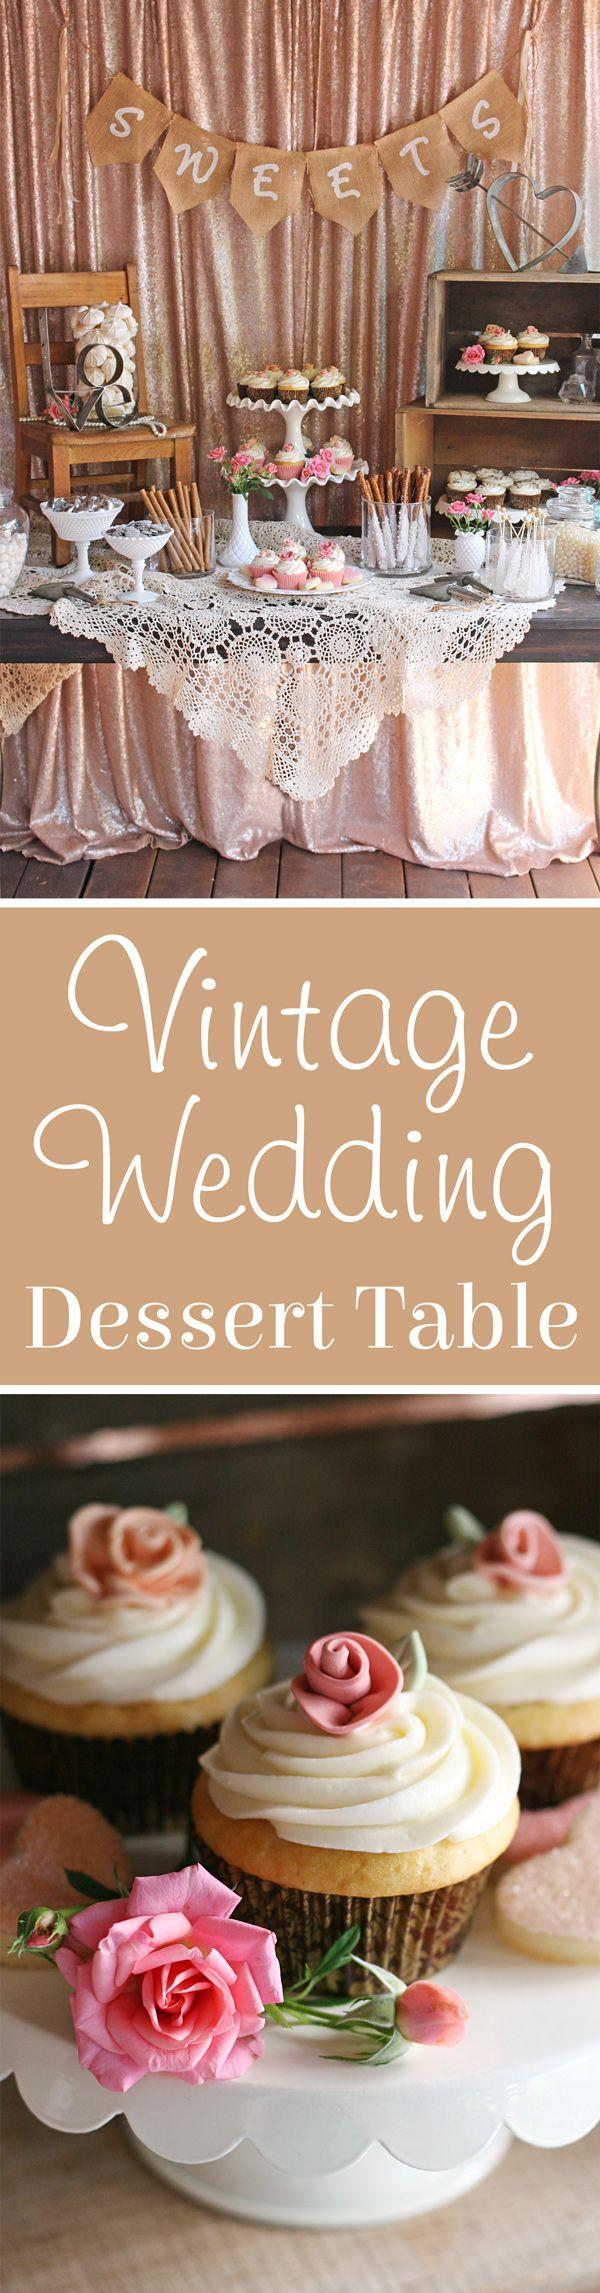 Düğün - Vintage Wedding Dessert Table